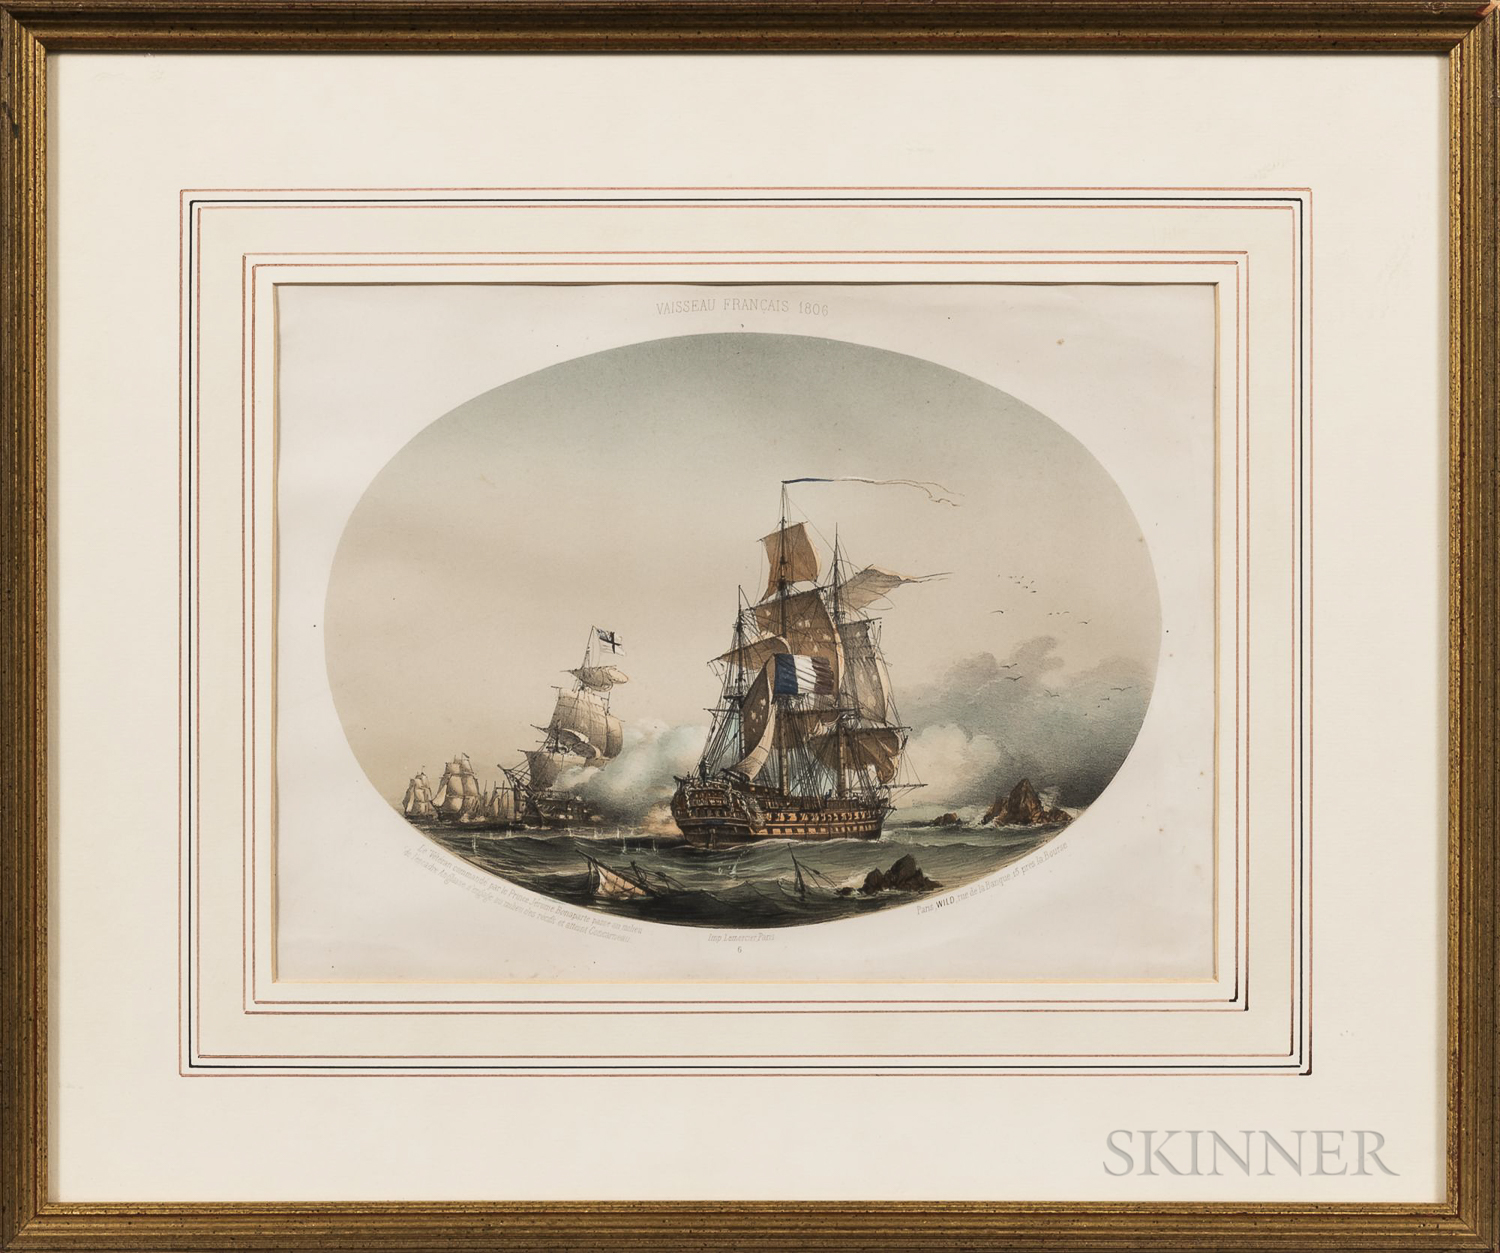 Five Framed Prints of Historic Naval Vessels and Battles:, Vaisseau Francaise 1806, Capture of the Cleopatra by the Nymphe, Battle Betw